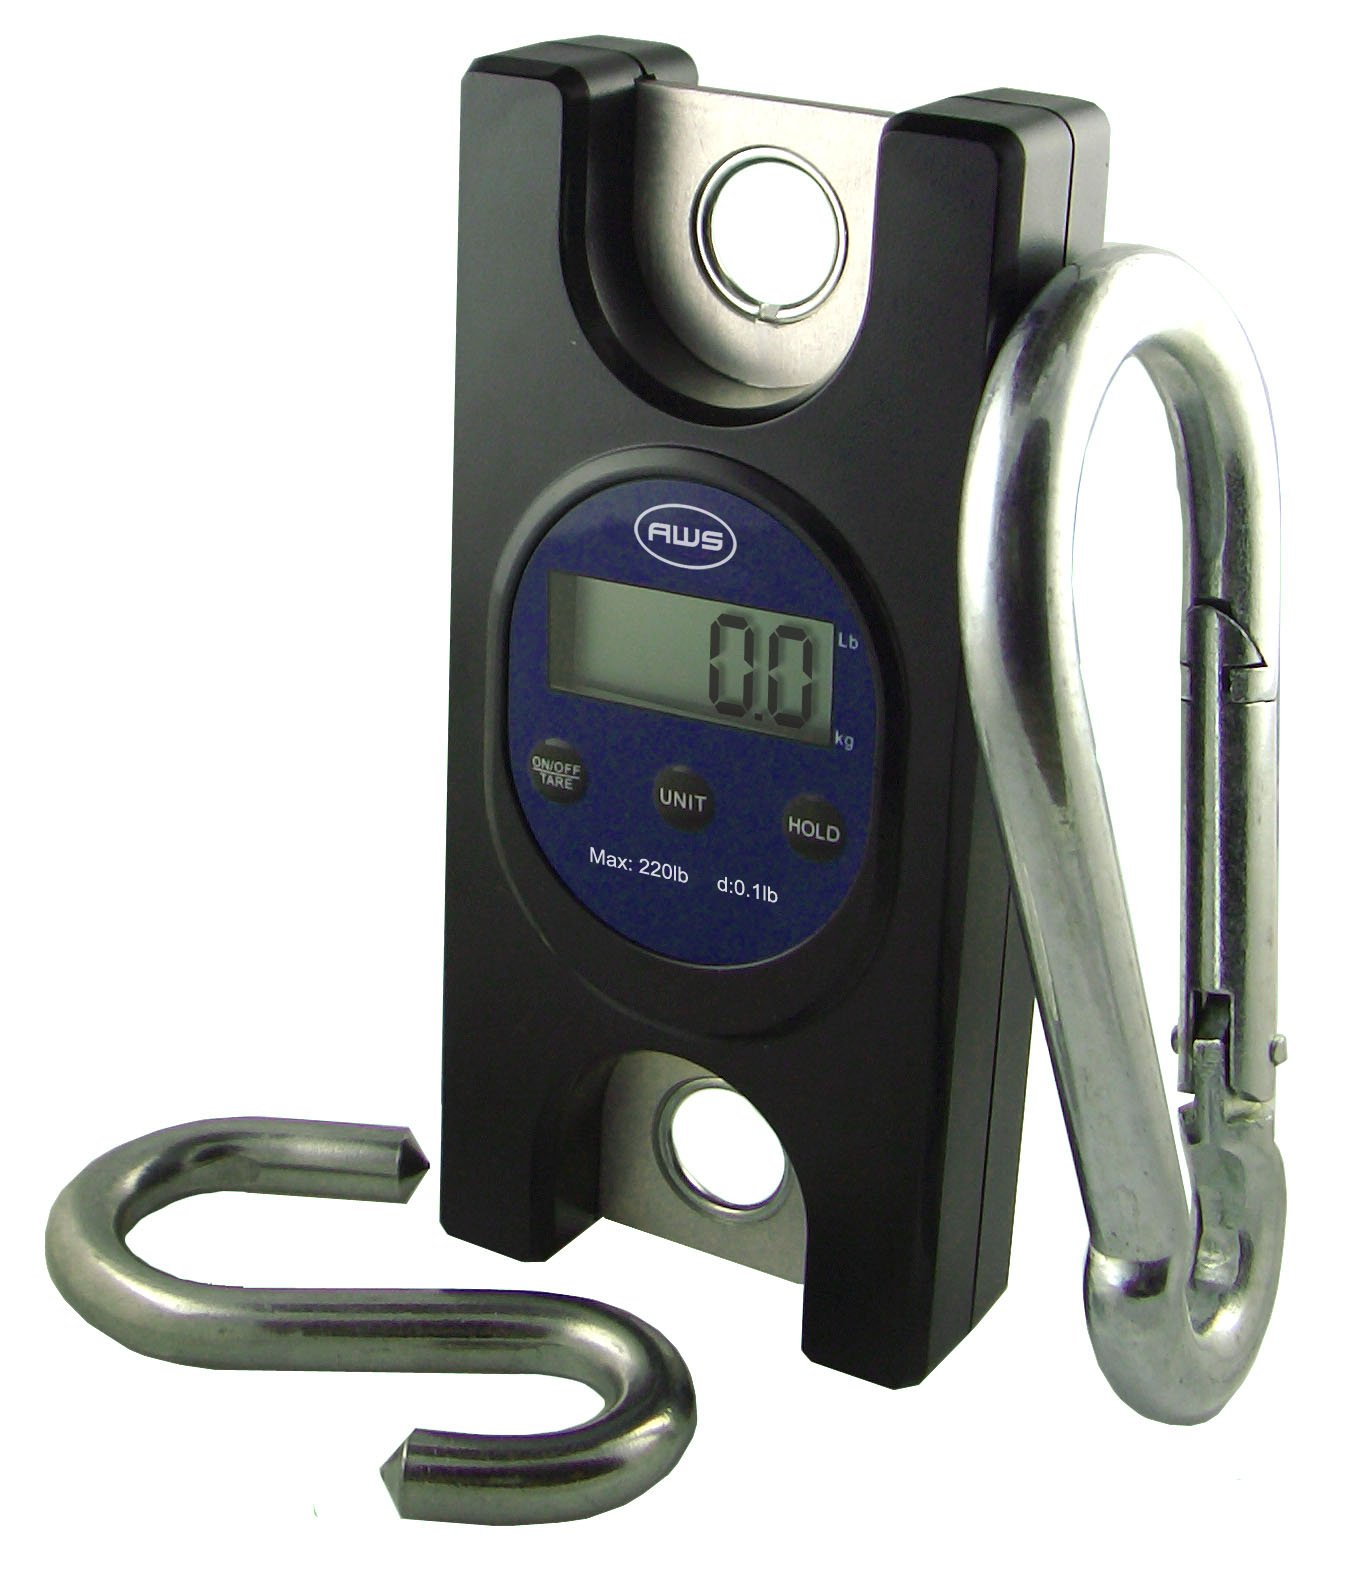 American Weigh Scale Amw-tl330 Industrial Heavy Duty Digital Hanging Scale, 330-Pound